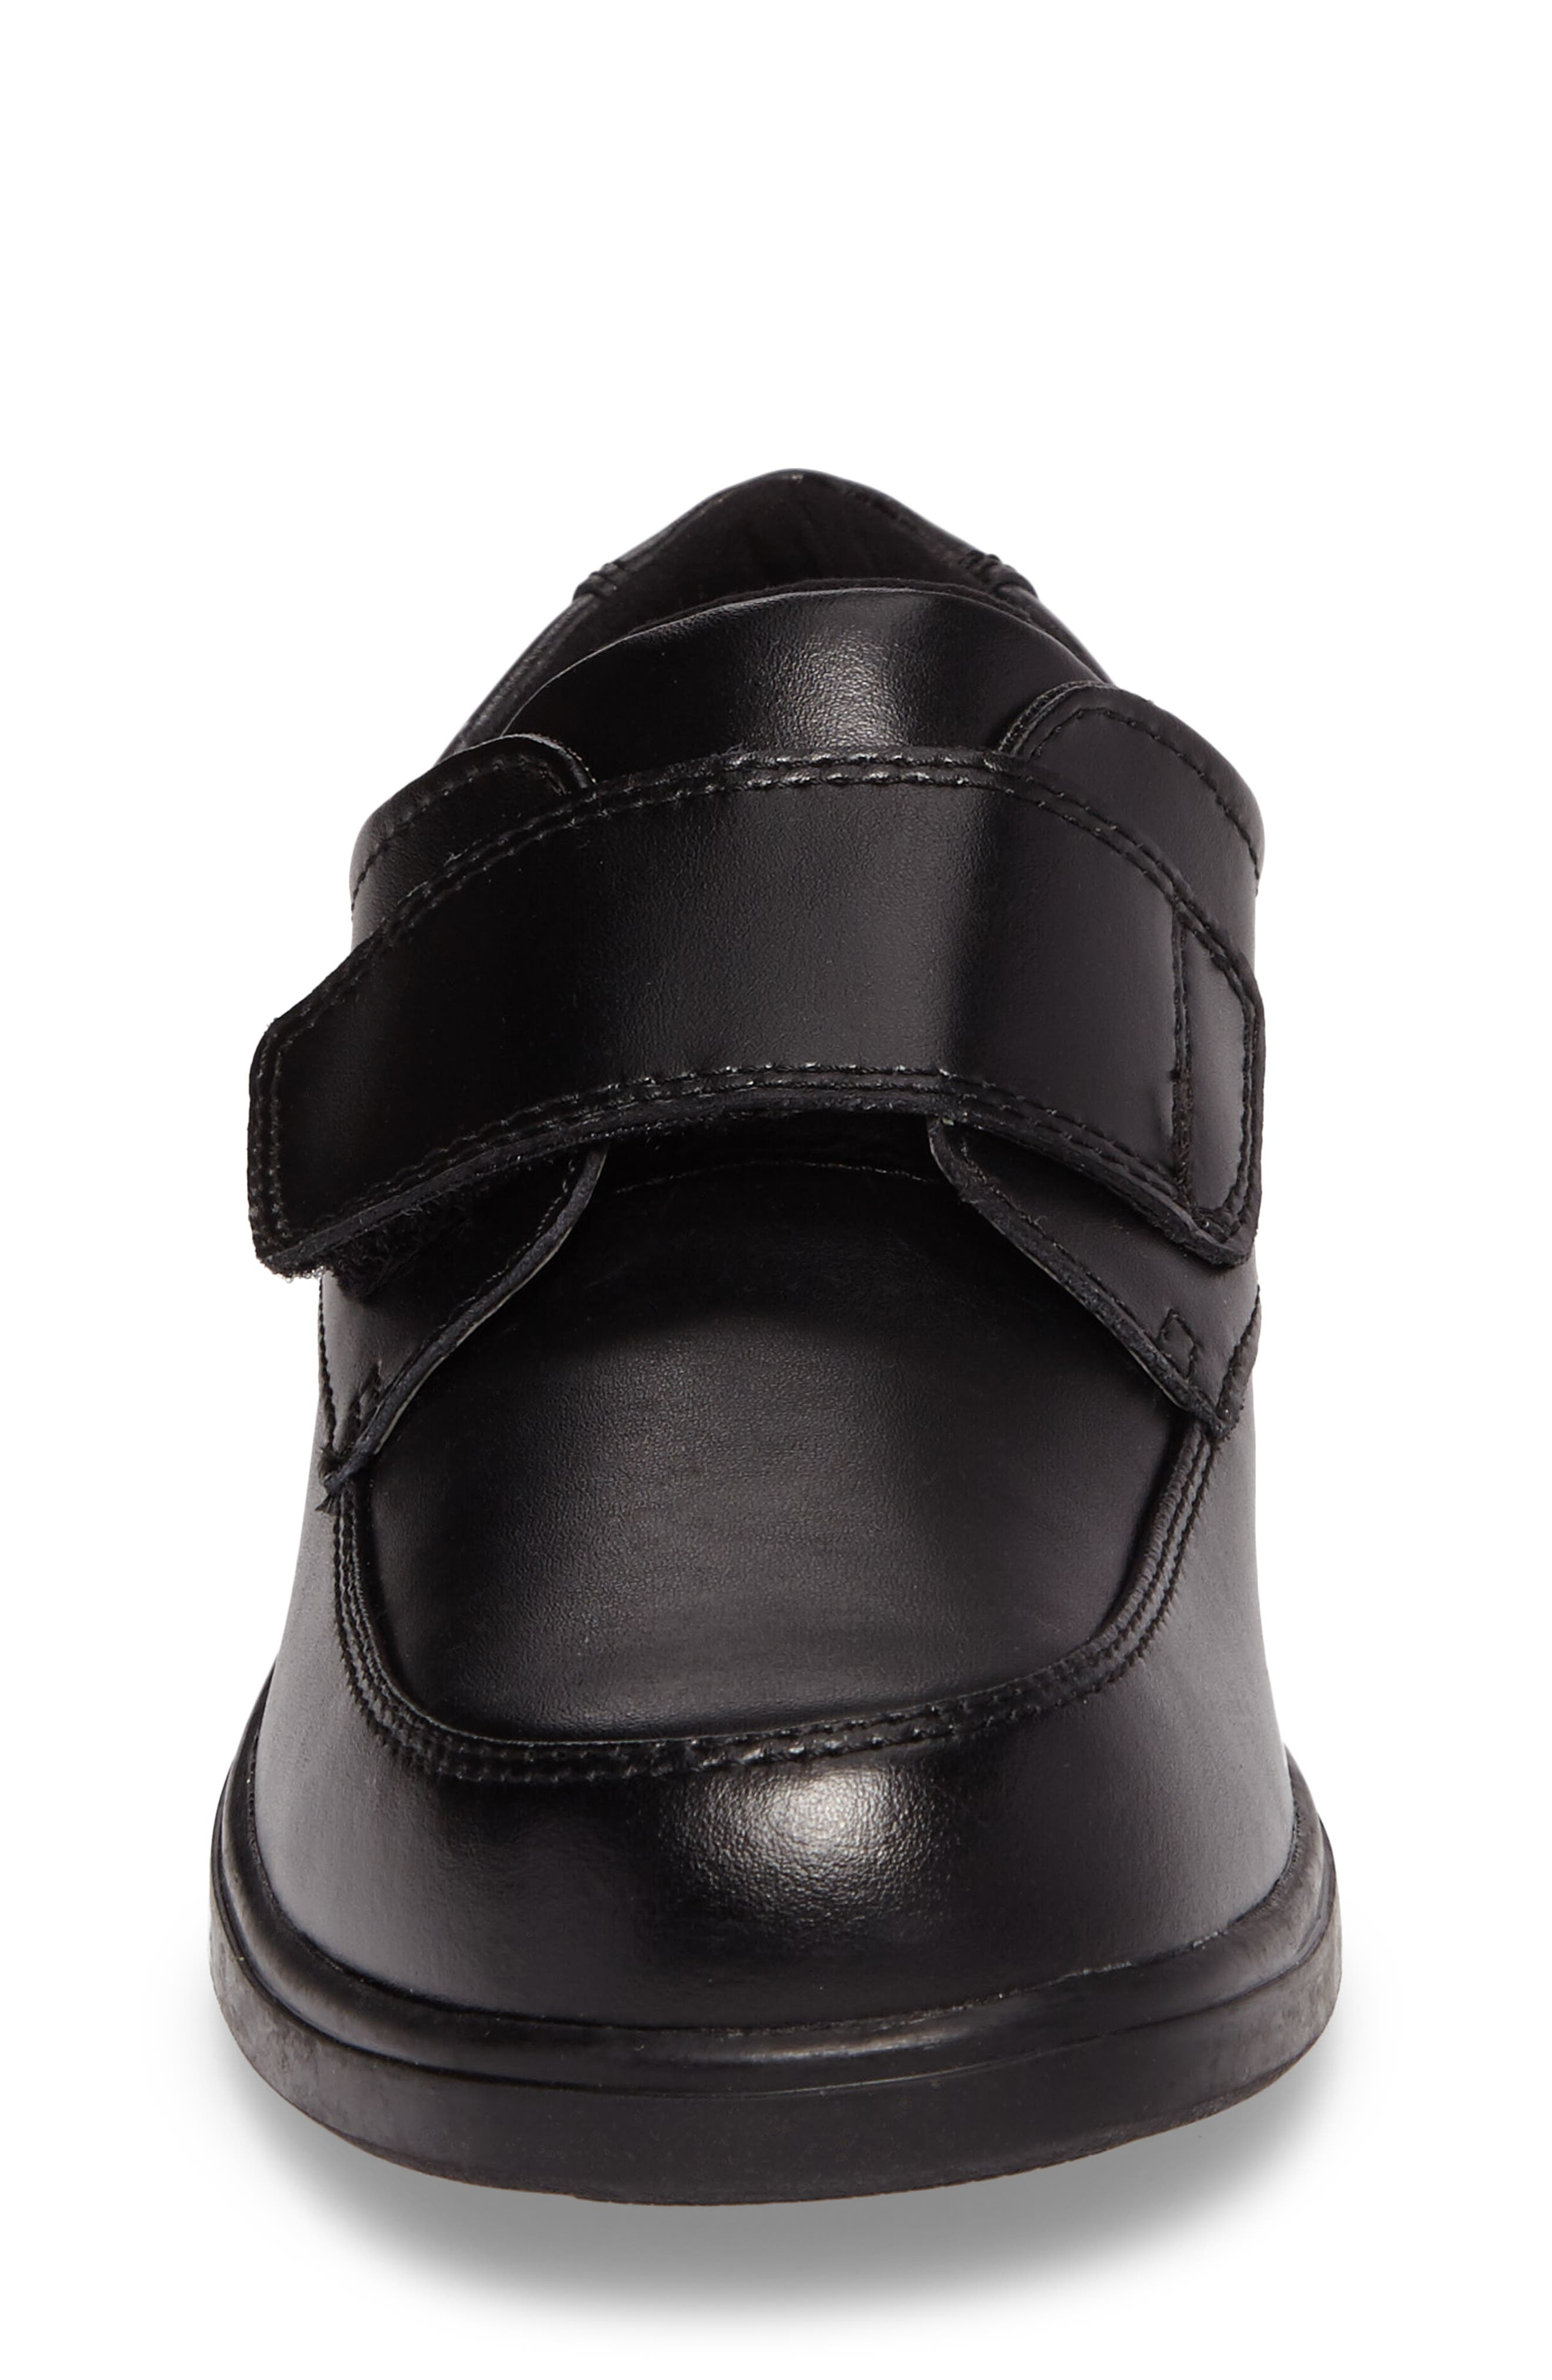 Hush Puppies Gavin Front Strap Dress Shoe,                             Alternate thumbnail 4, color,                             BLACK LEATHER